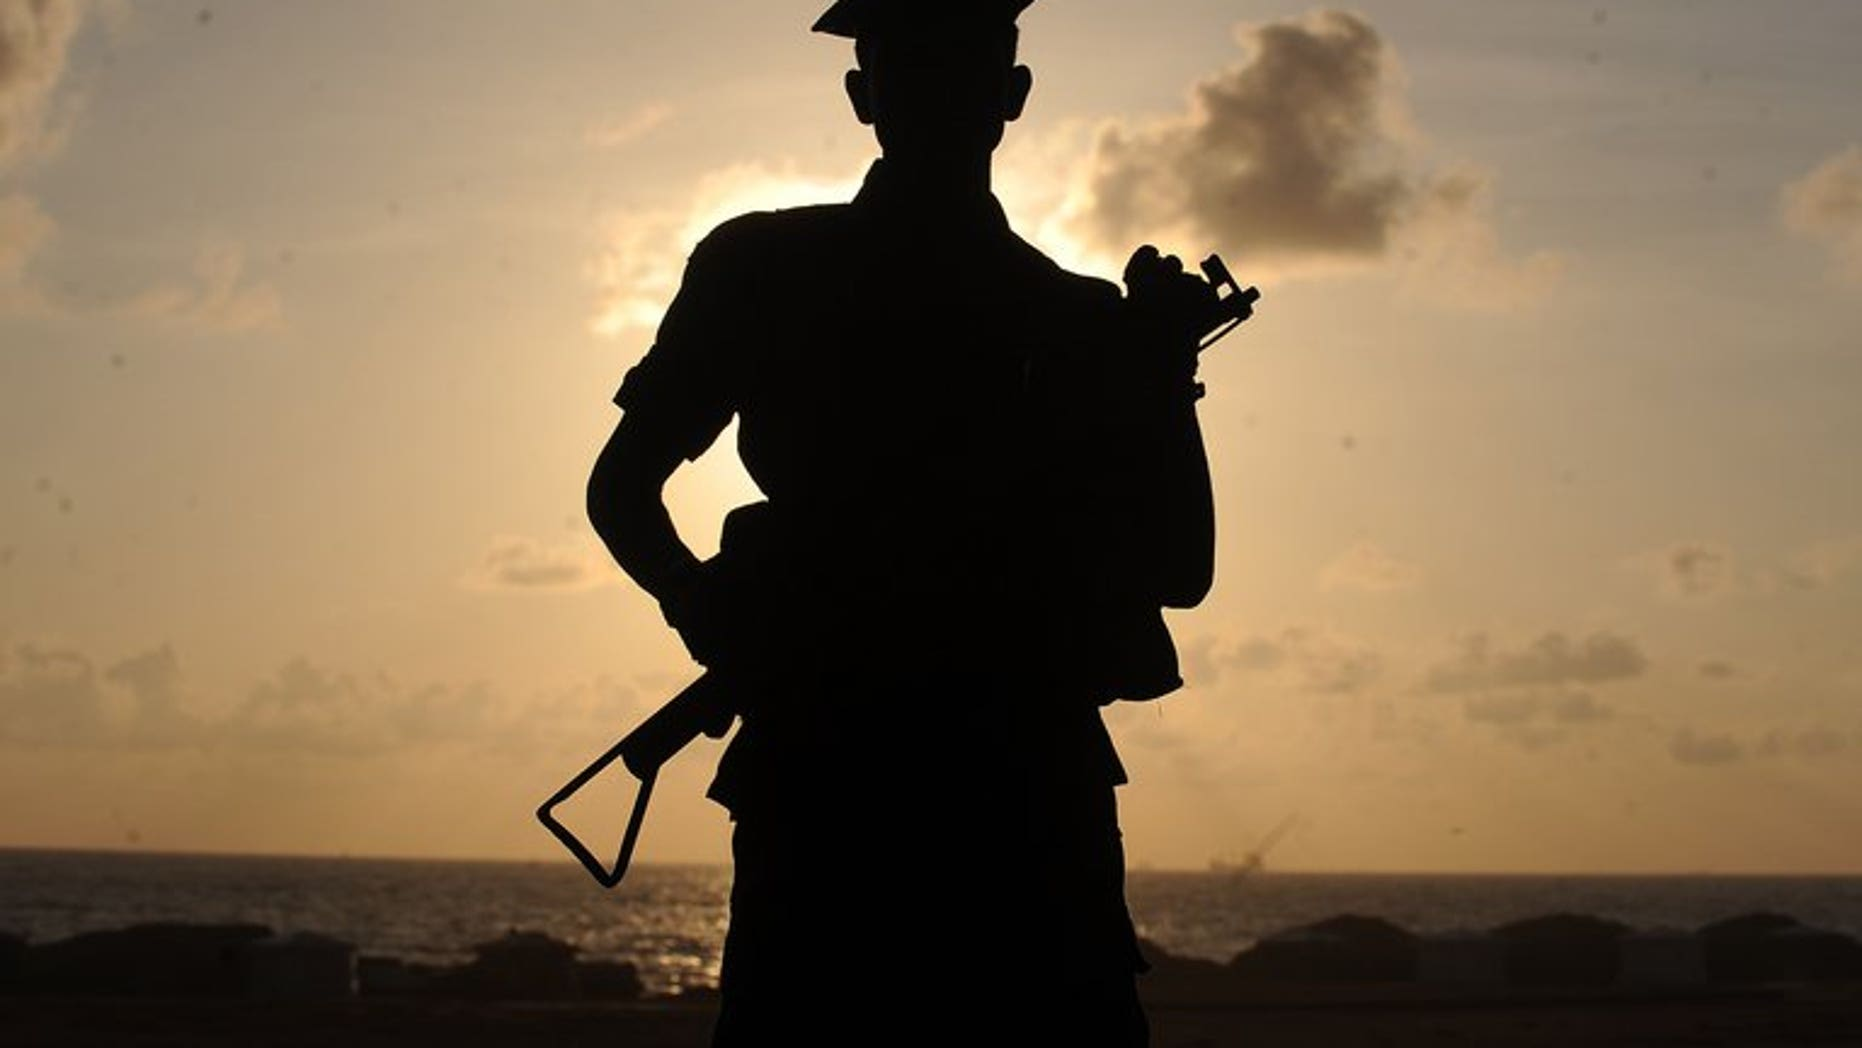 A Sri Lankan soldier stands guard on the seaside in Colombo, on May 16, 2012. Human Rights Watch has urged Commonwealth leaders to boycott an upcoming summit in Sri Lanka to protest against the country's failure to investigate abuses by its military during a decades-long fight against separatists.